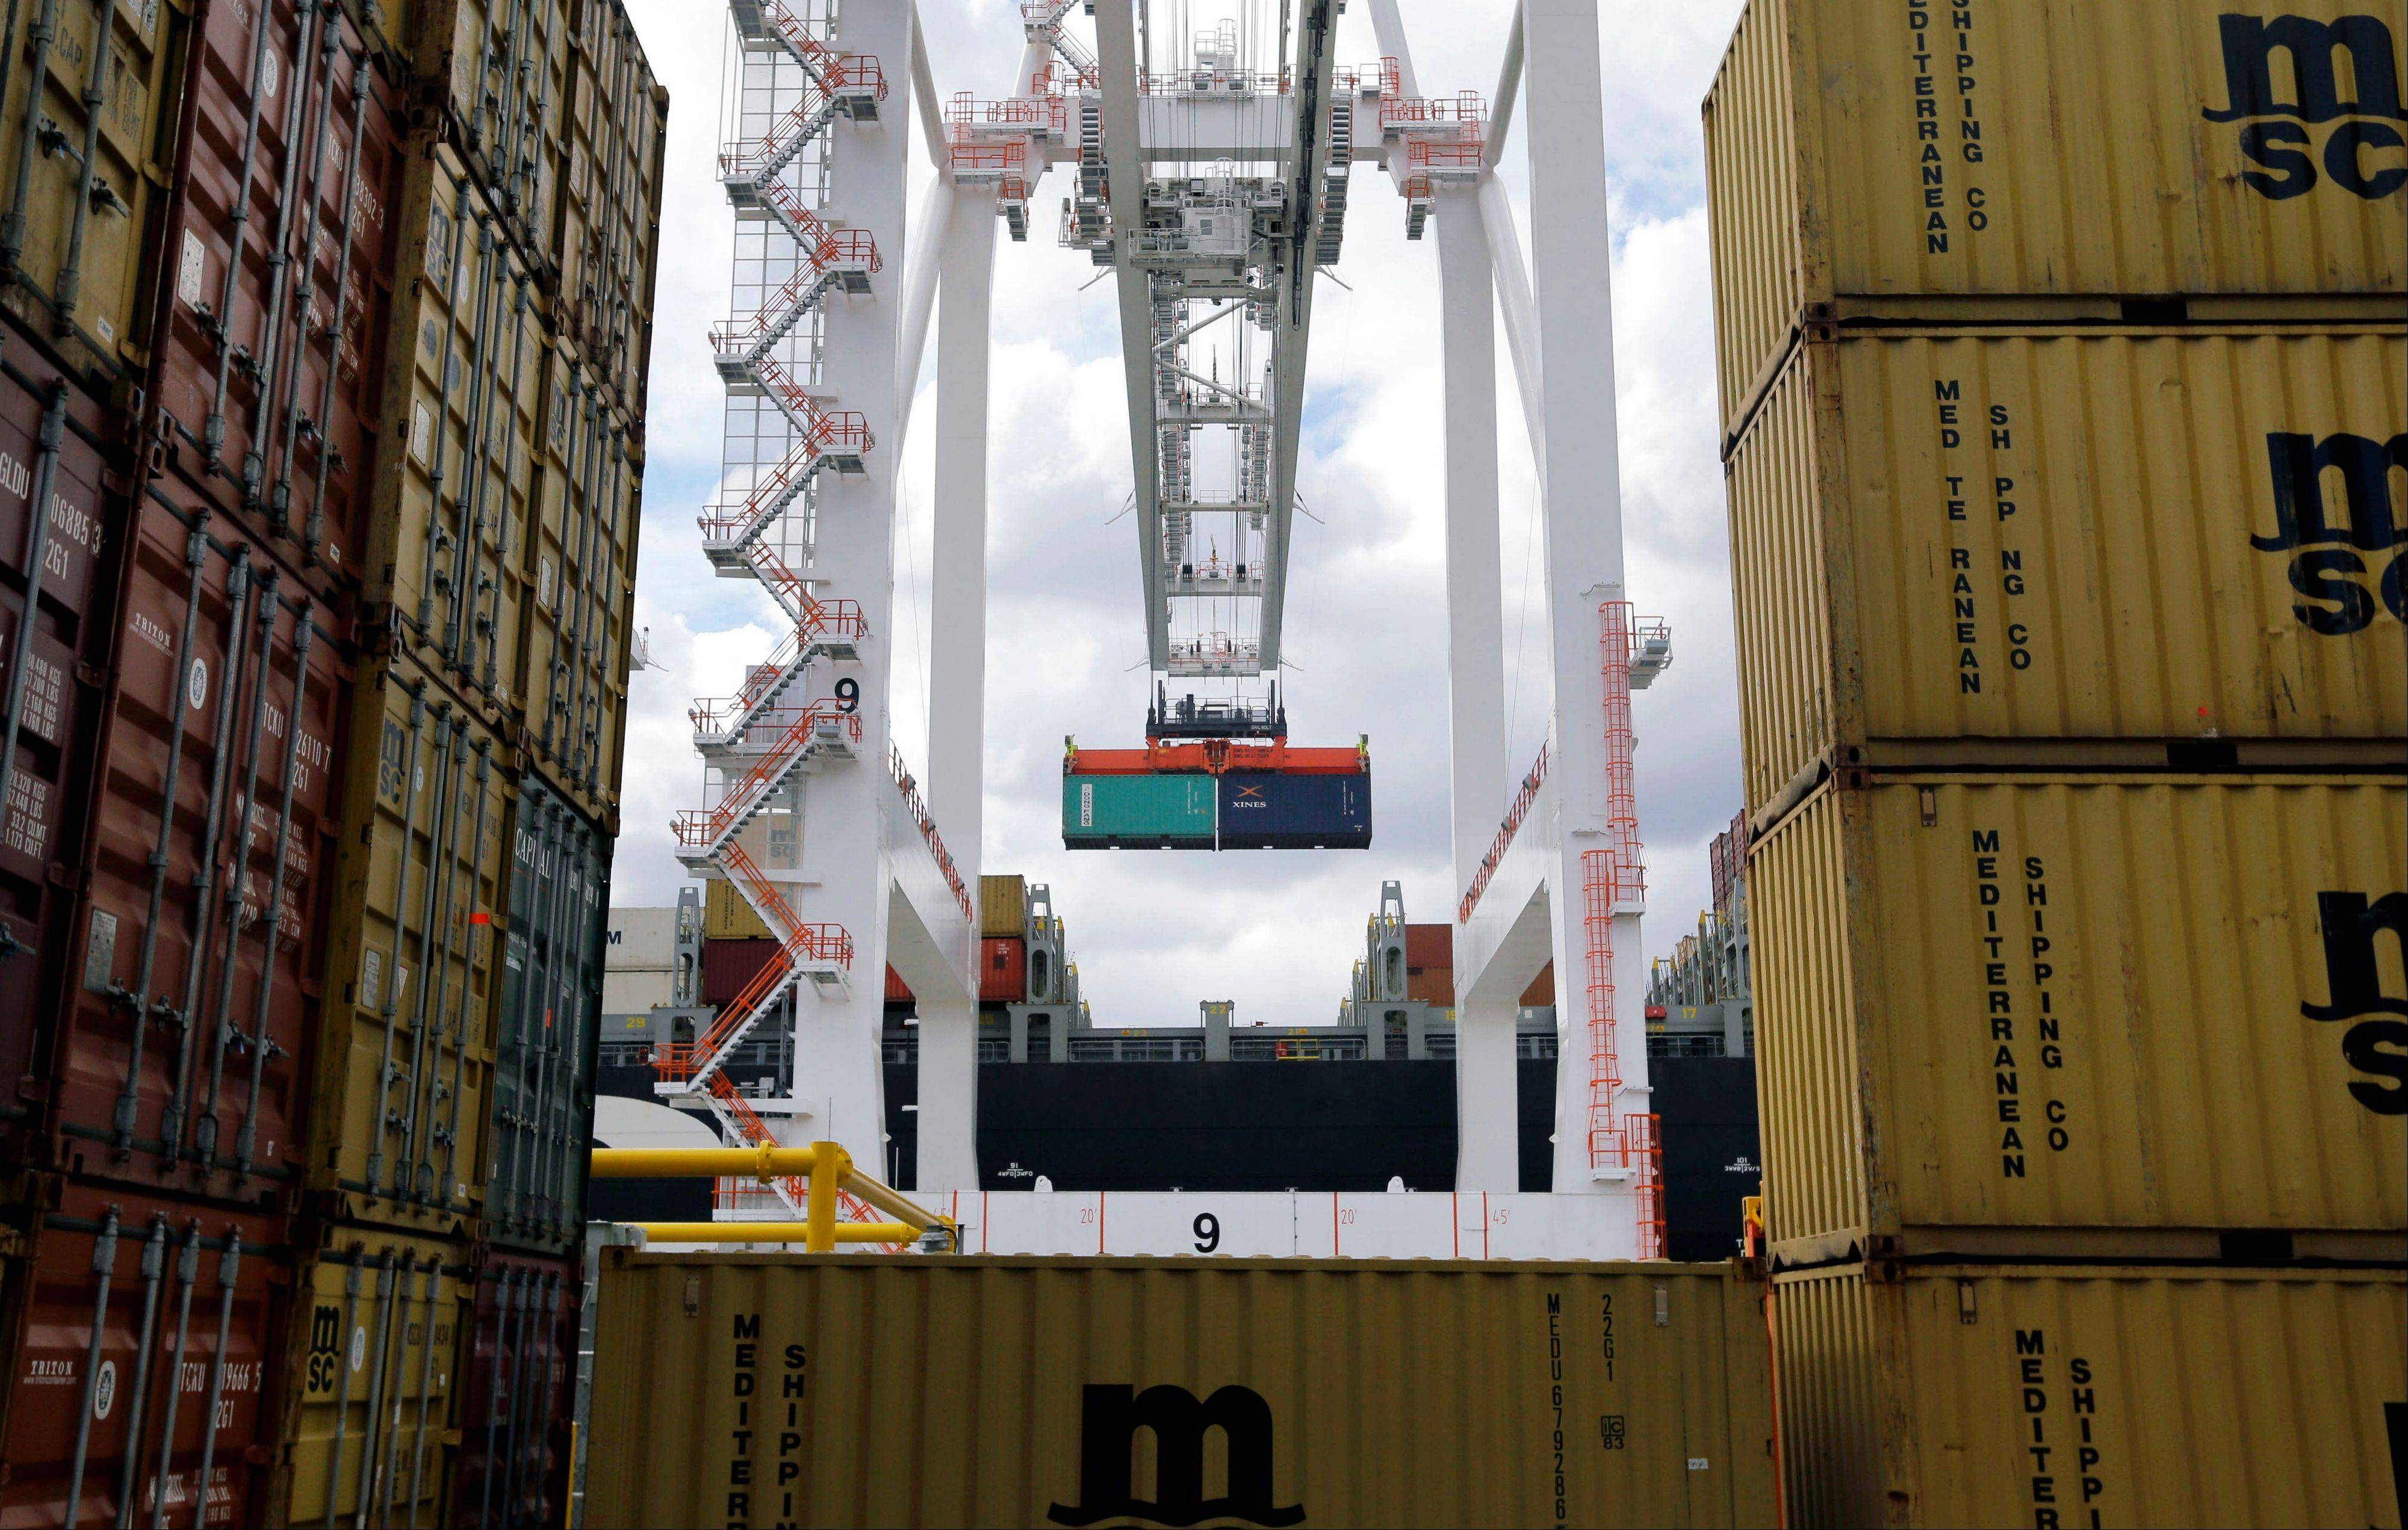 A crane removes a container from a ship at the Port of Baltimore's Seagirt Marine Terminal in Baltimore. The U.S. trade deficit widened in April, as demand for foreign cars, cell phones and other imported goods outpaced growth in U.S. exports.